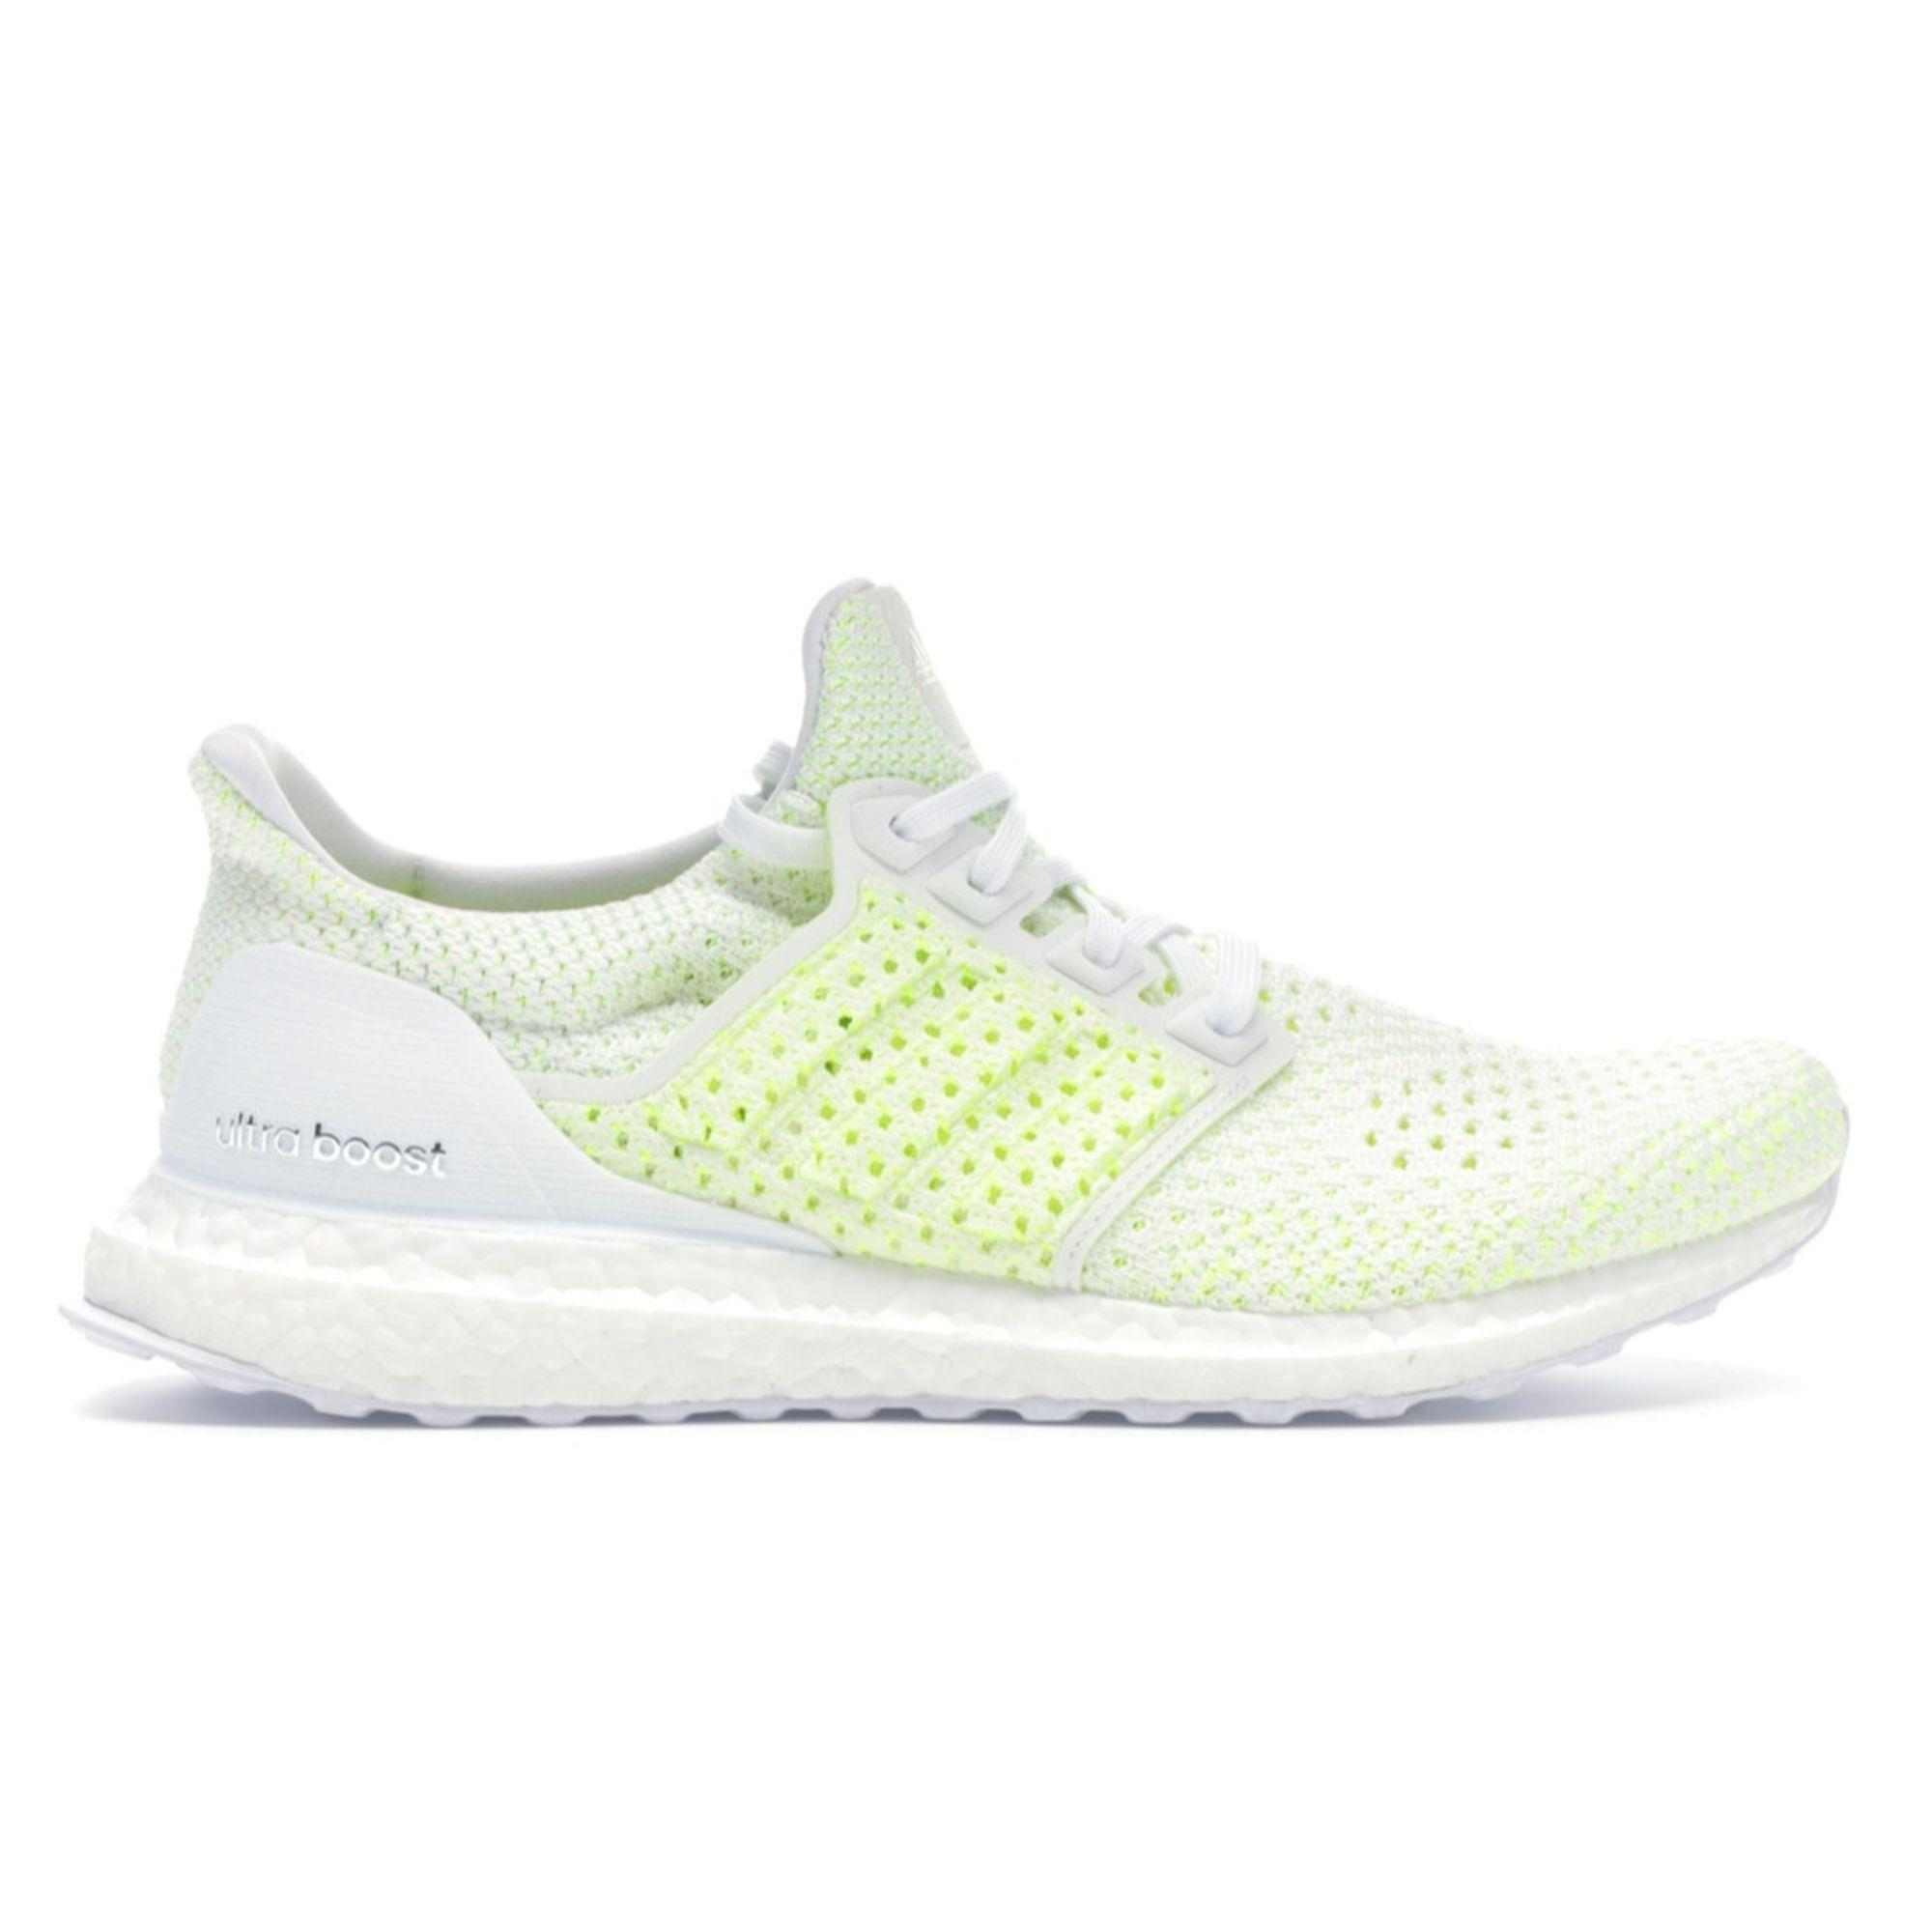 sports shoes e6f23 71778 Adidas Men's Original Ultraboost Clima Running Sports Shoes